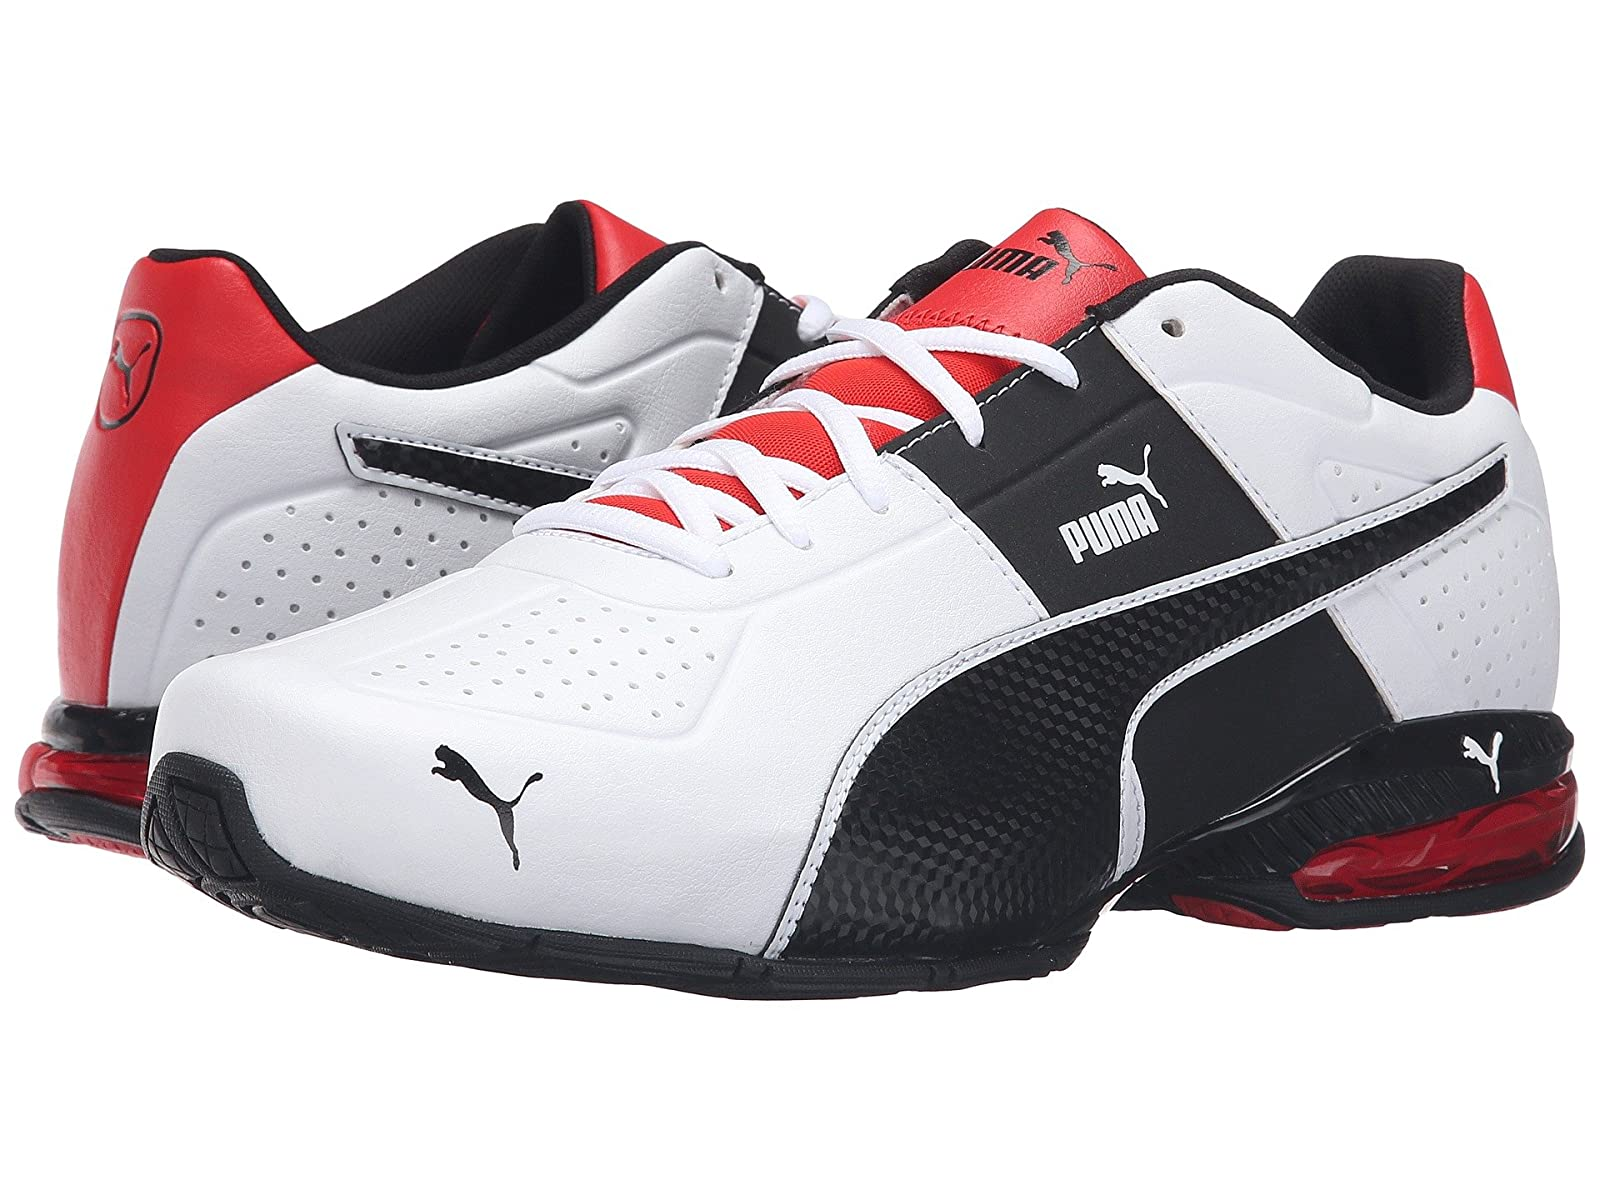 PUMA Cell Surin 2 FMAtmospheric grades have affordable shoes